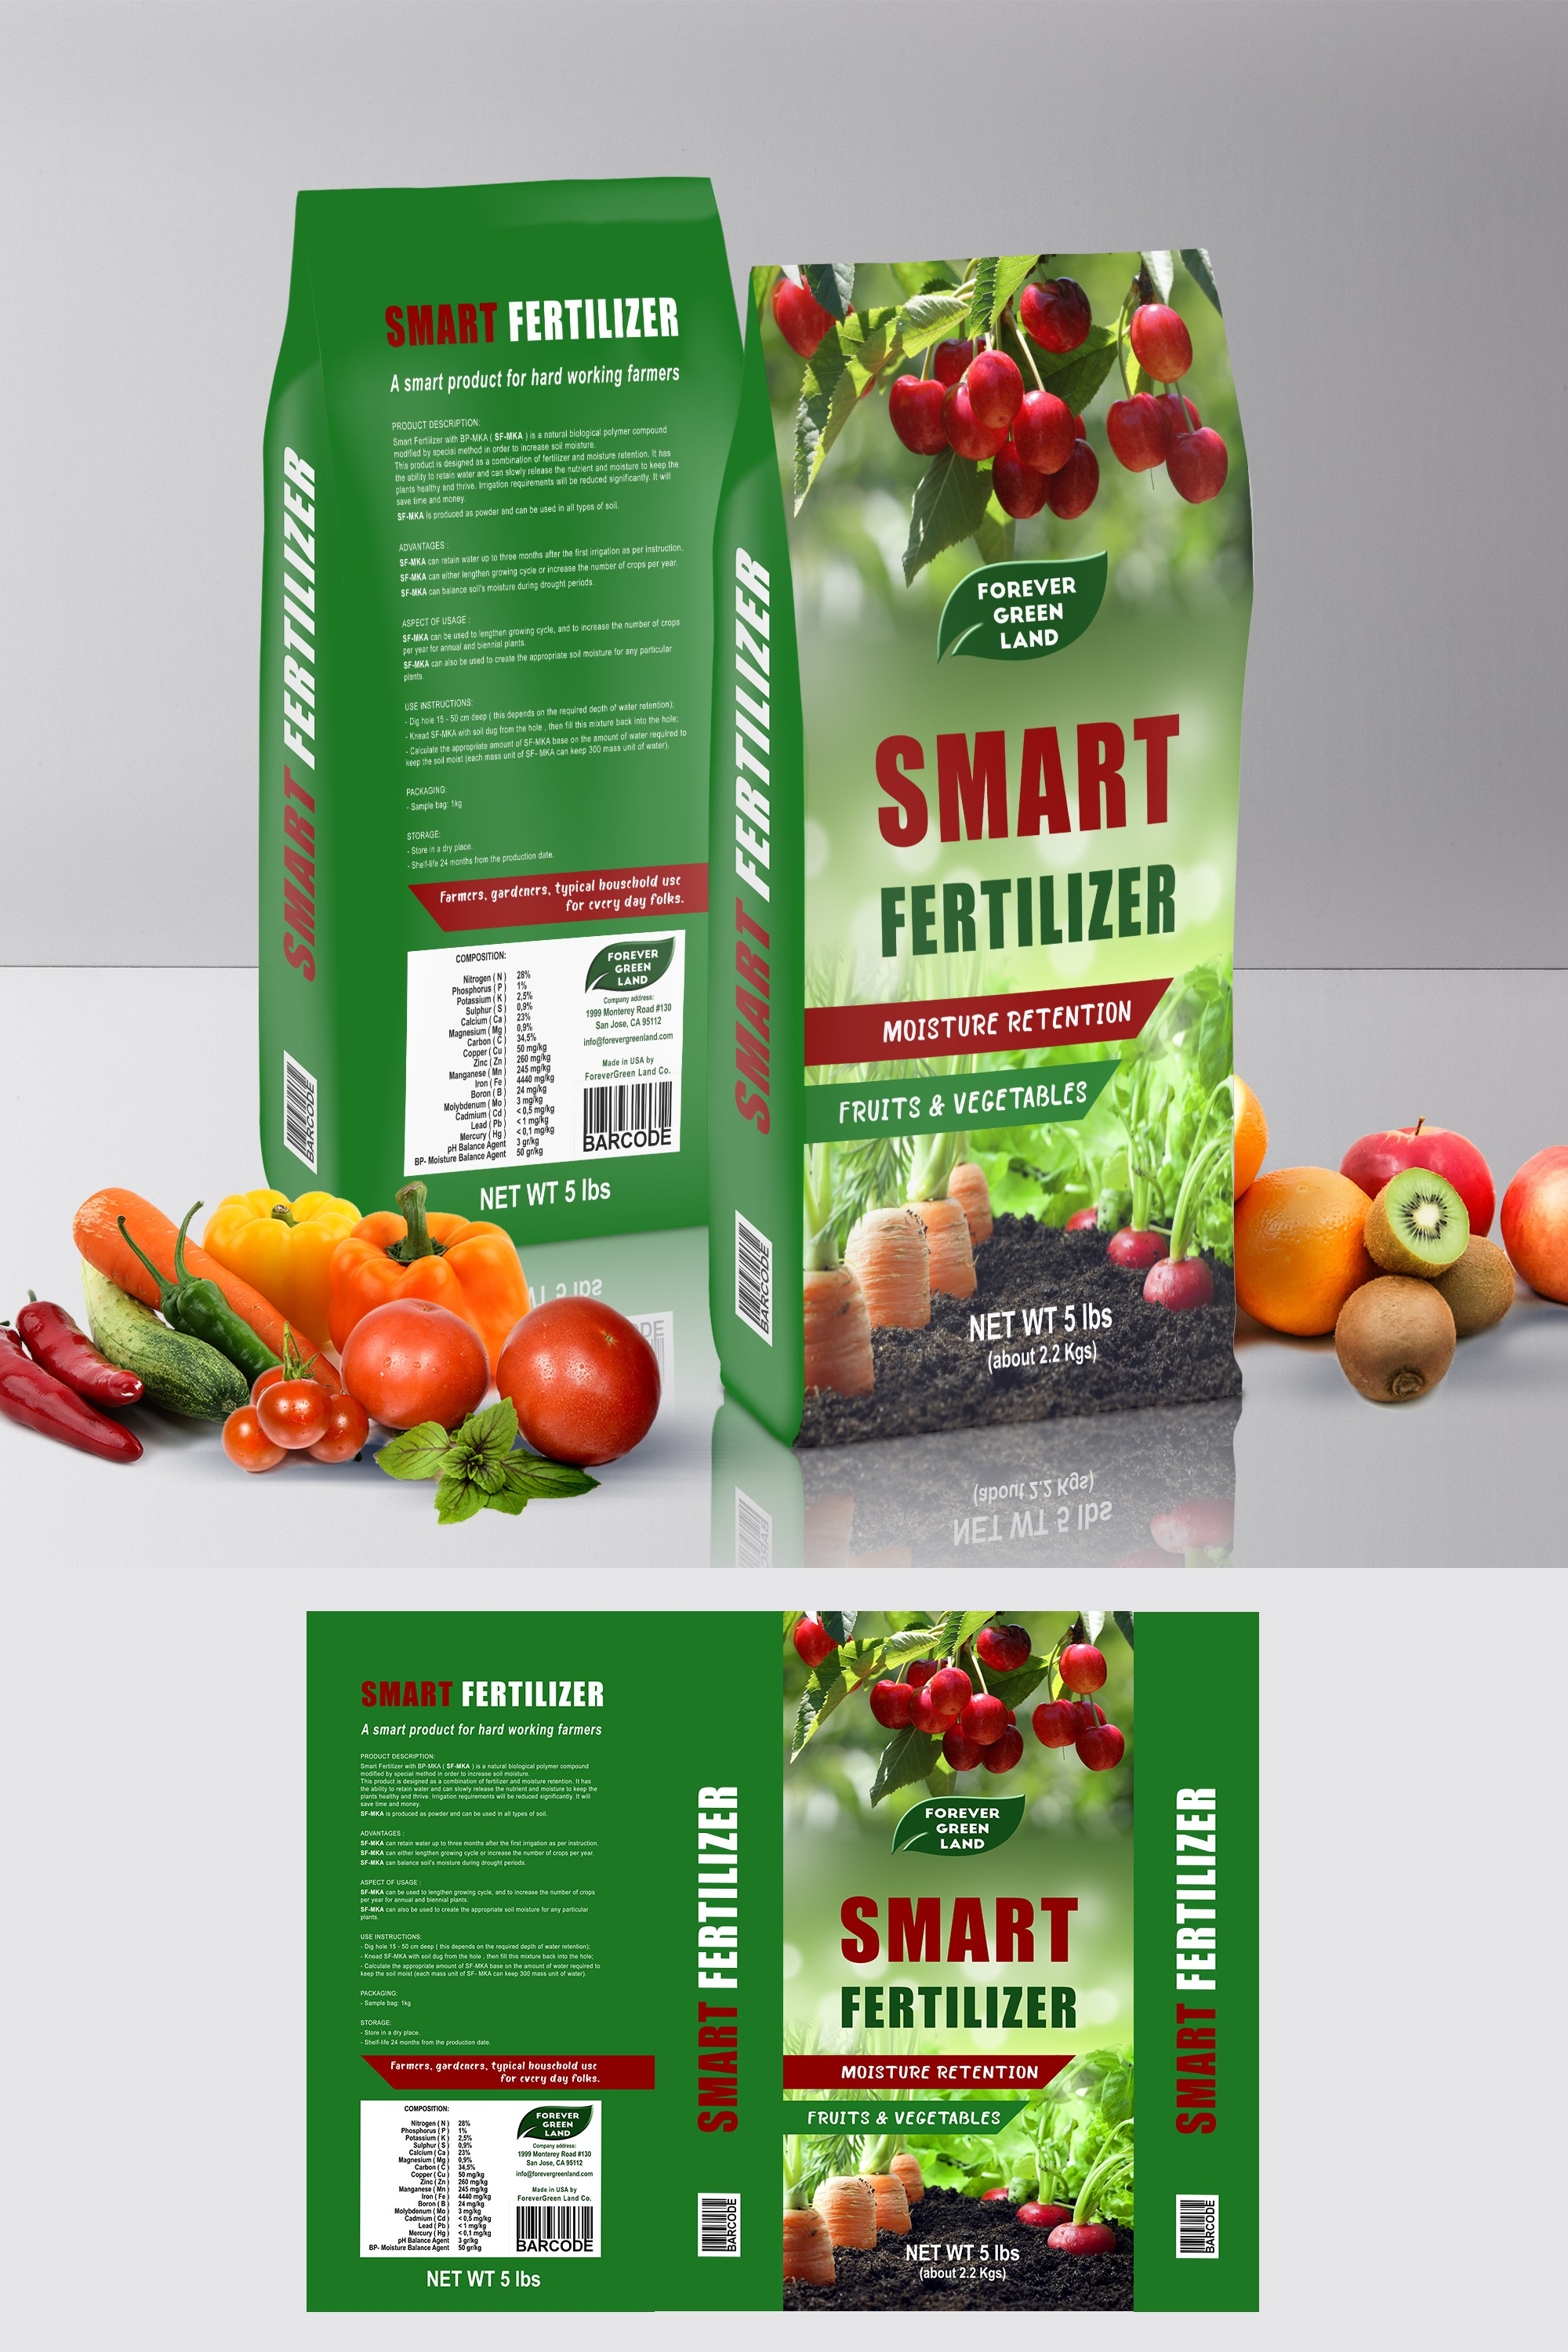 Continue works with the Smart Fertilizer